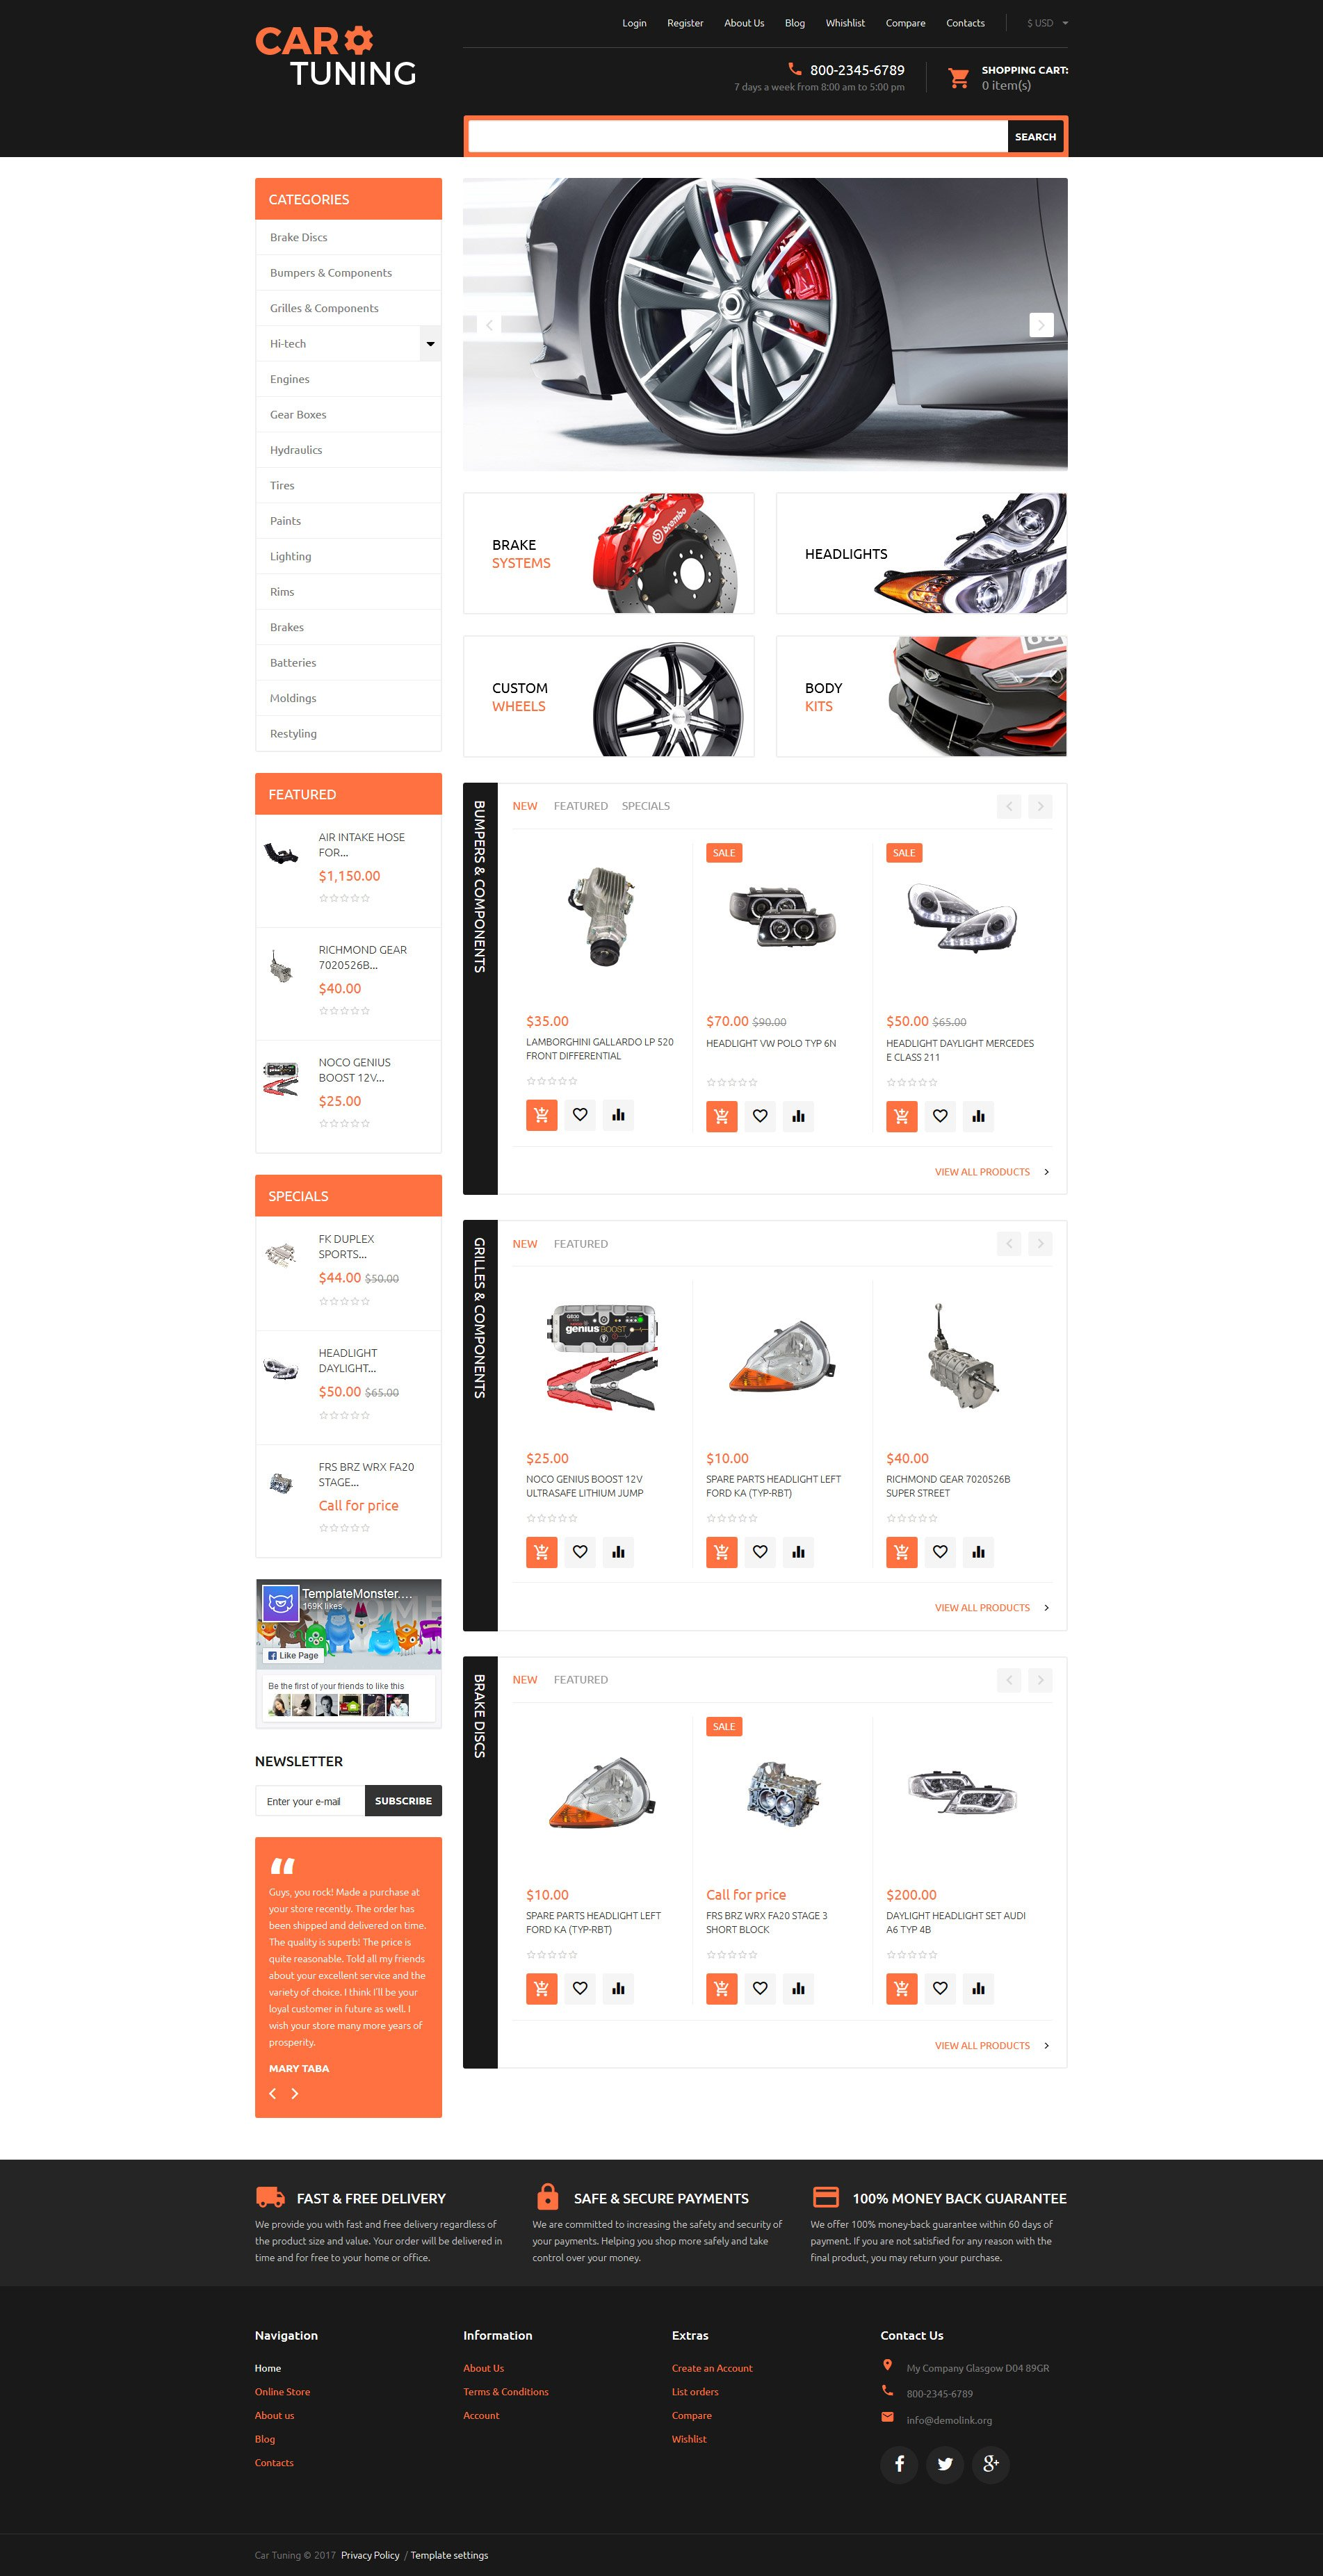 Car Tuning VirtueMart Template